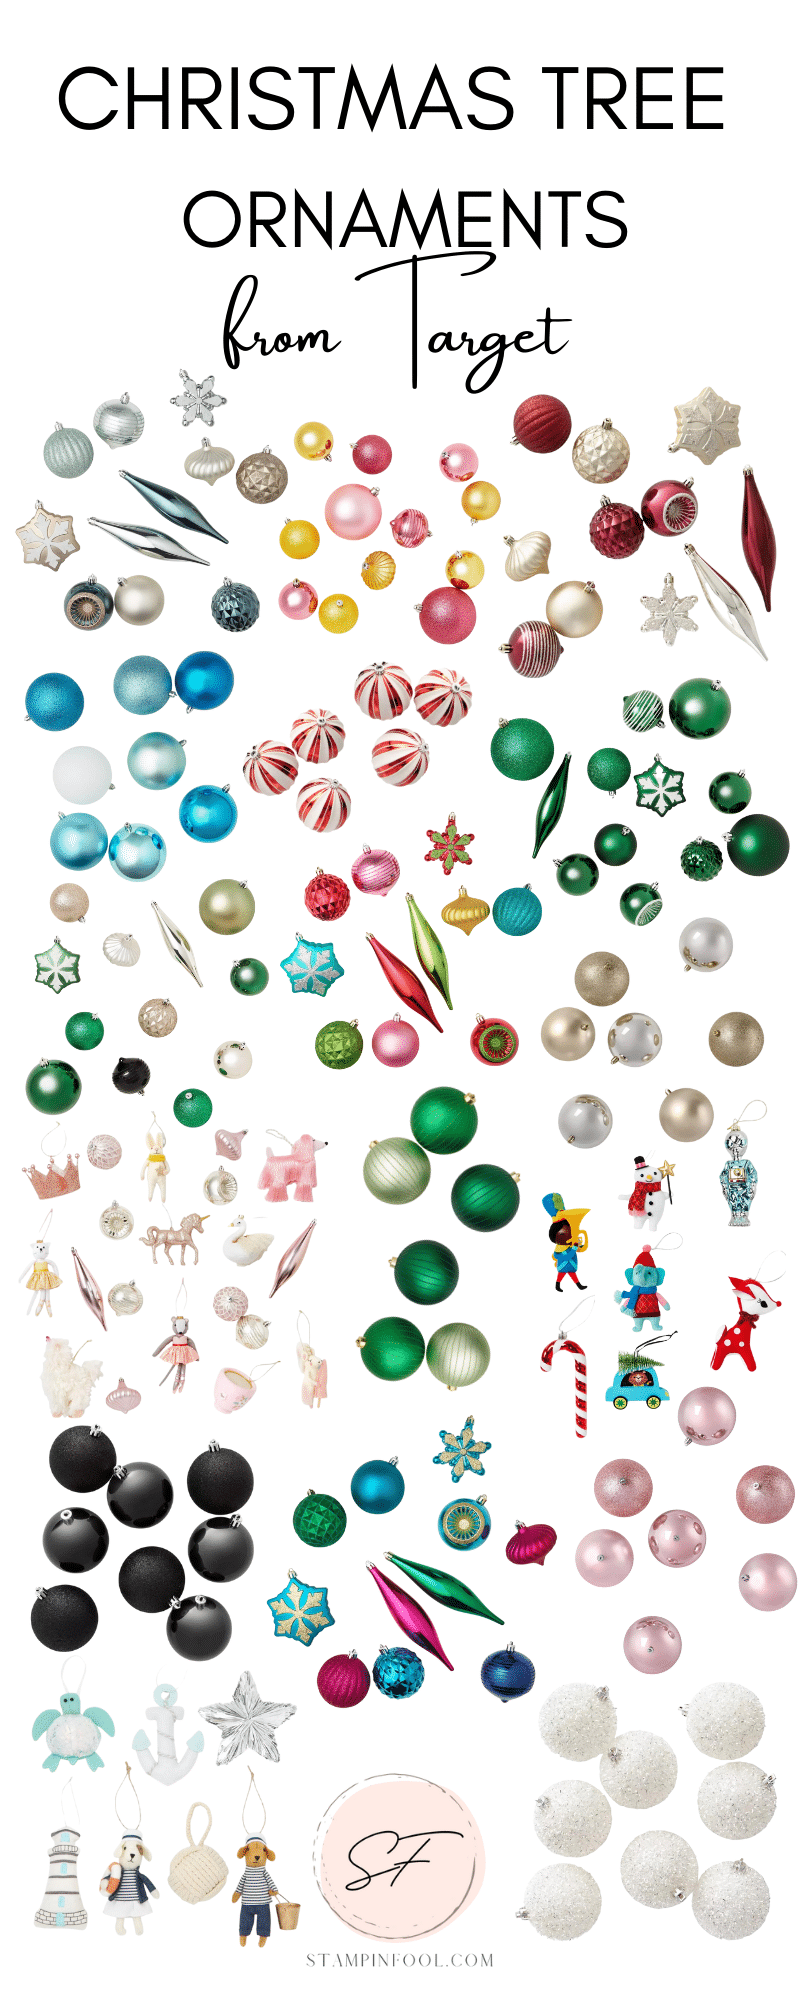 Best Christmas Ornament Sets from Target for your Christmas tree in 2021